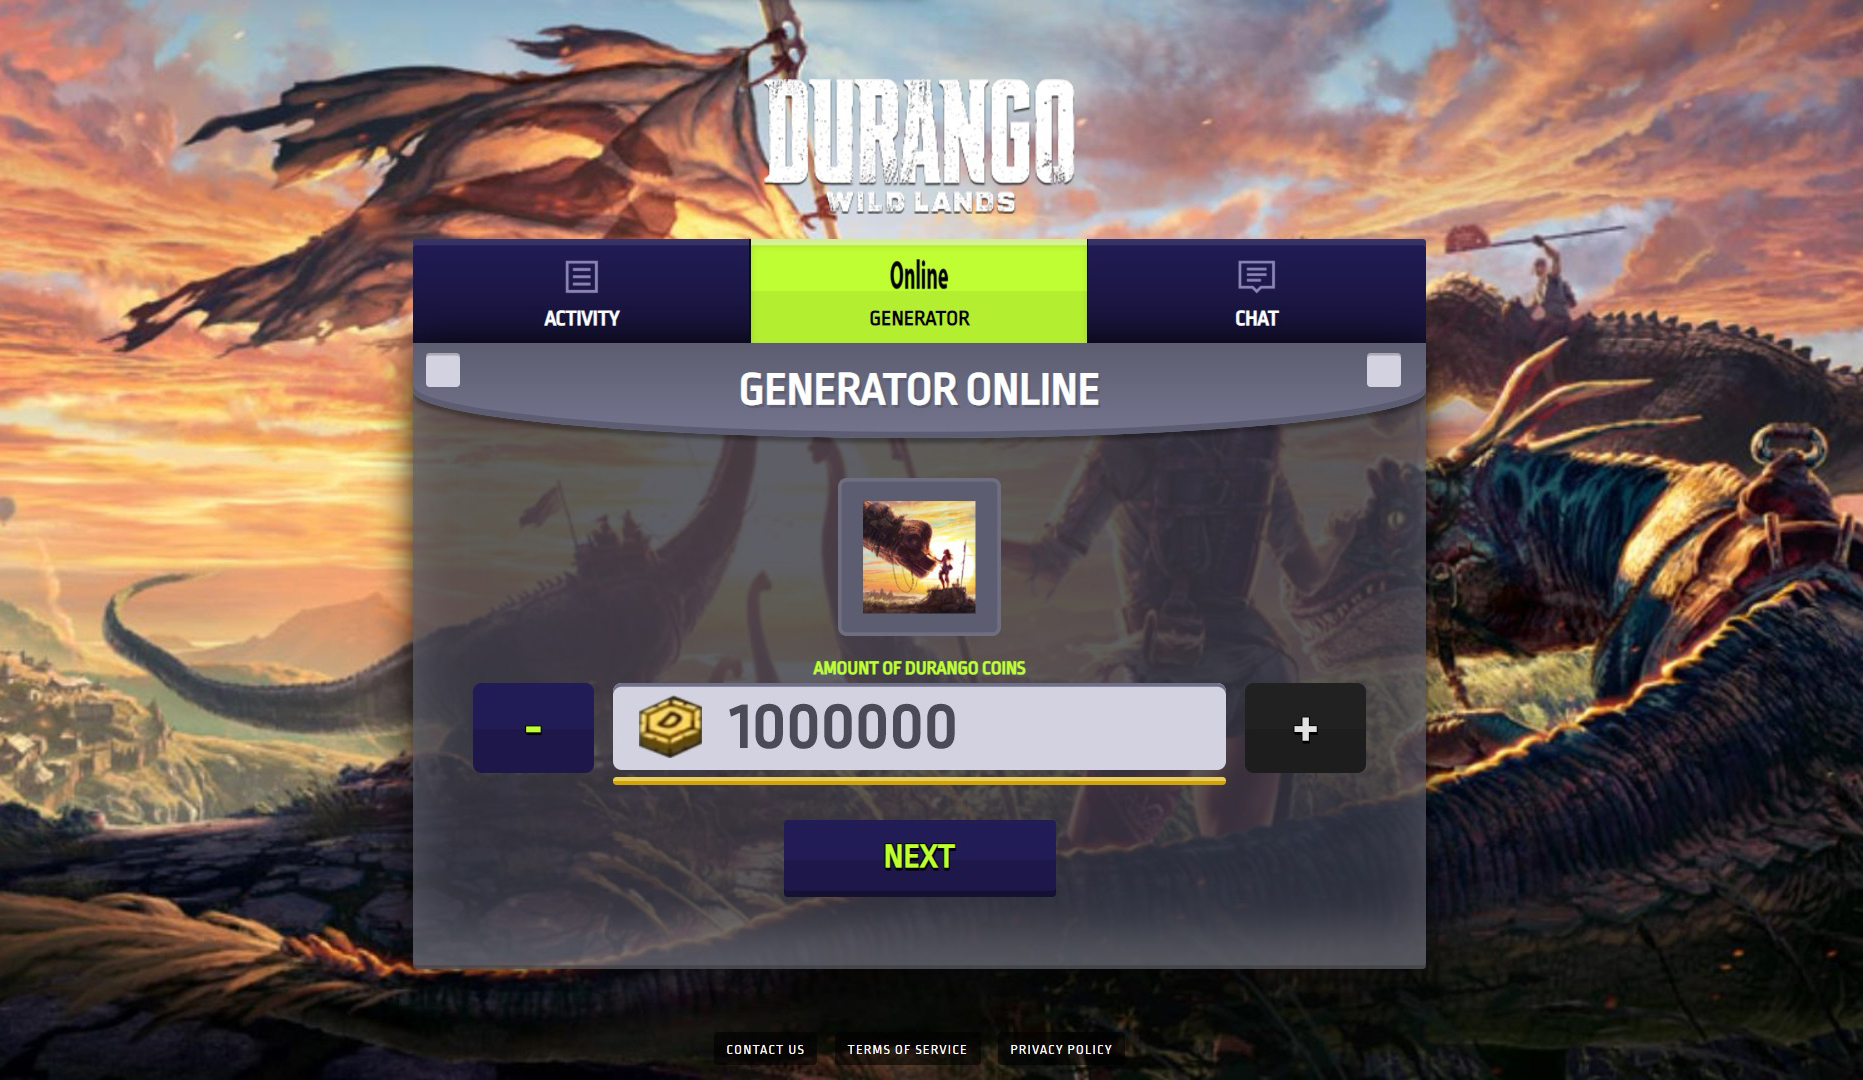 Hack) Durango Wild Lands Cheats 2019 - add unlimited coins android